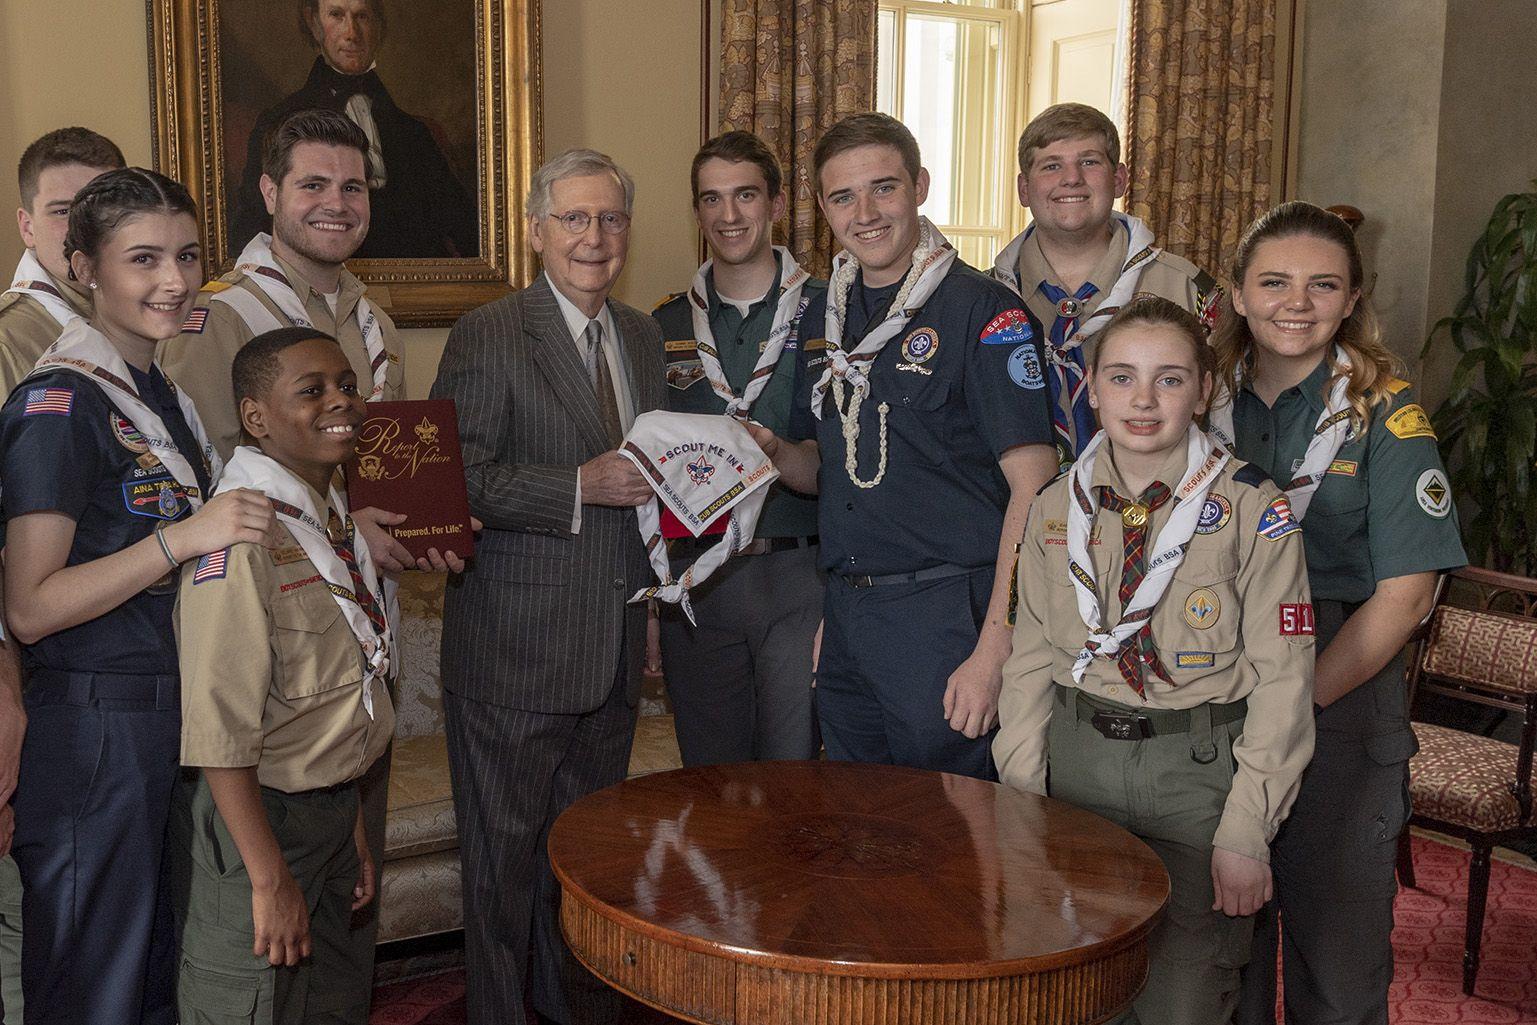 The Scouts with Senate Majority Leader Mitch McConnell